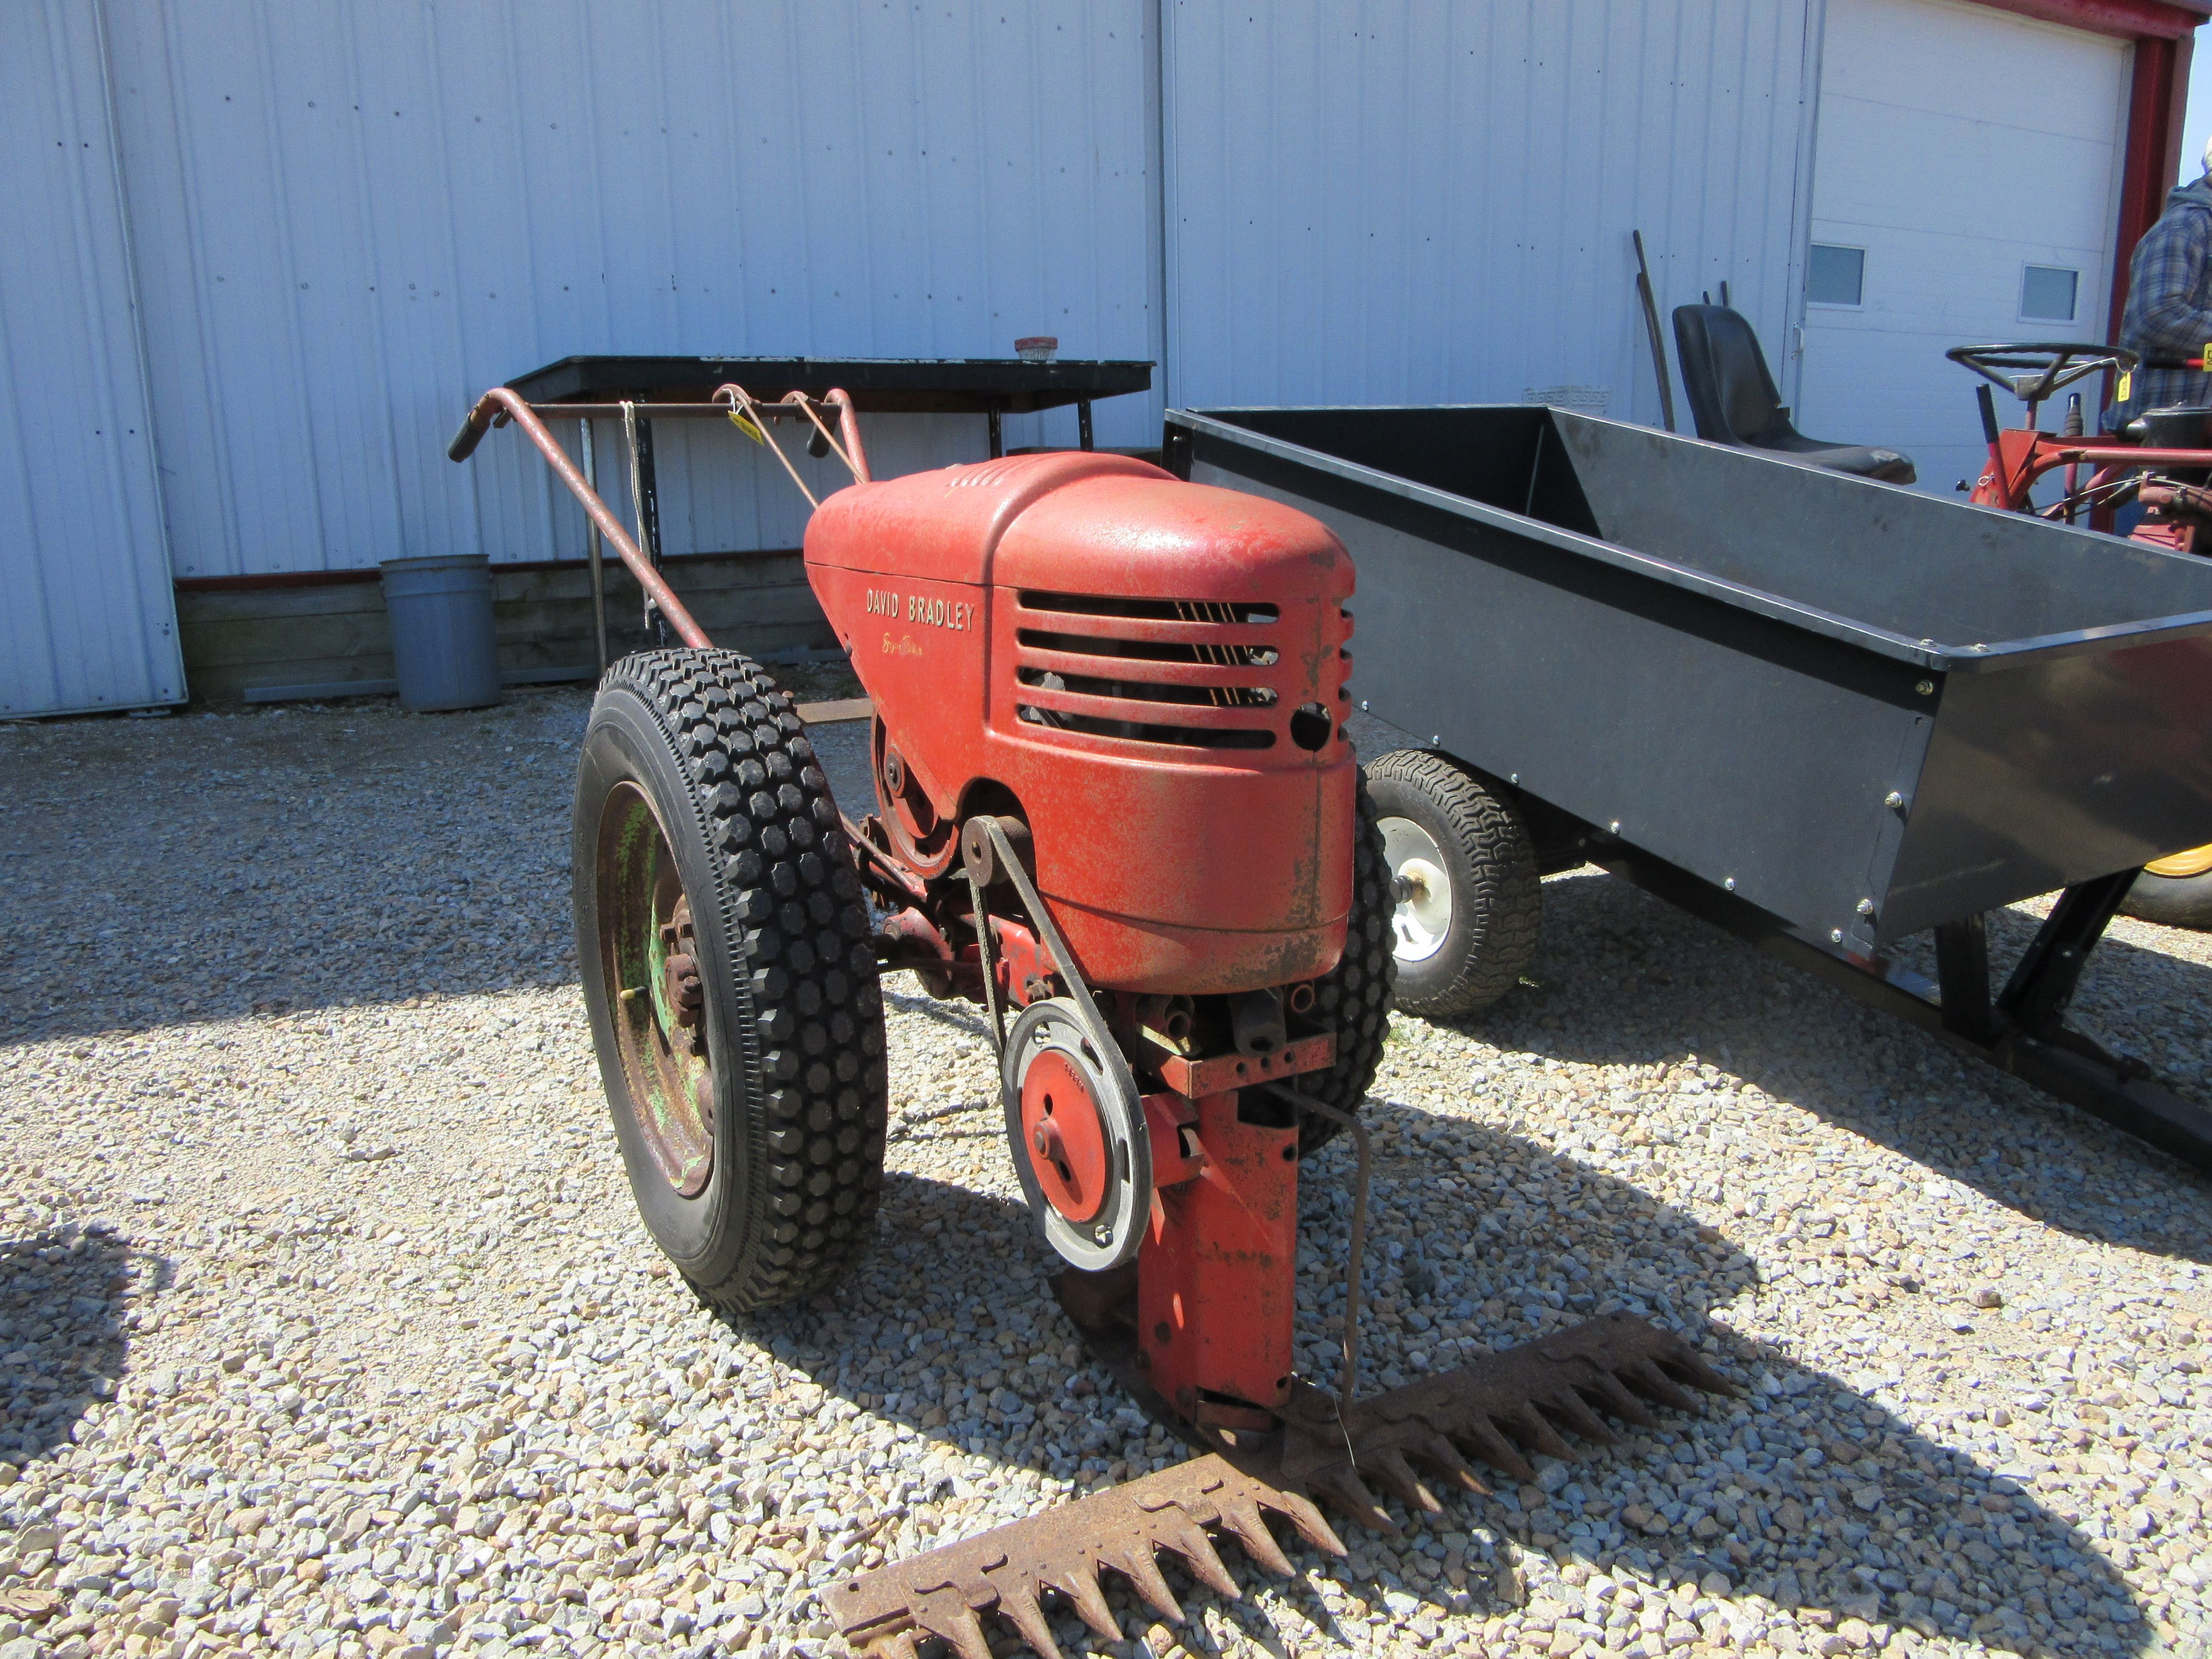 David Bradley mower cutter Tractors Pinterest